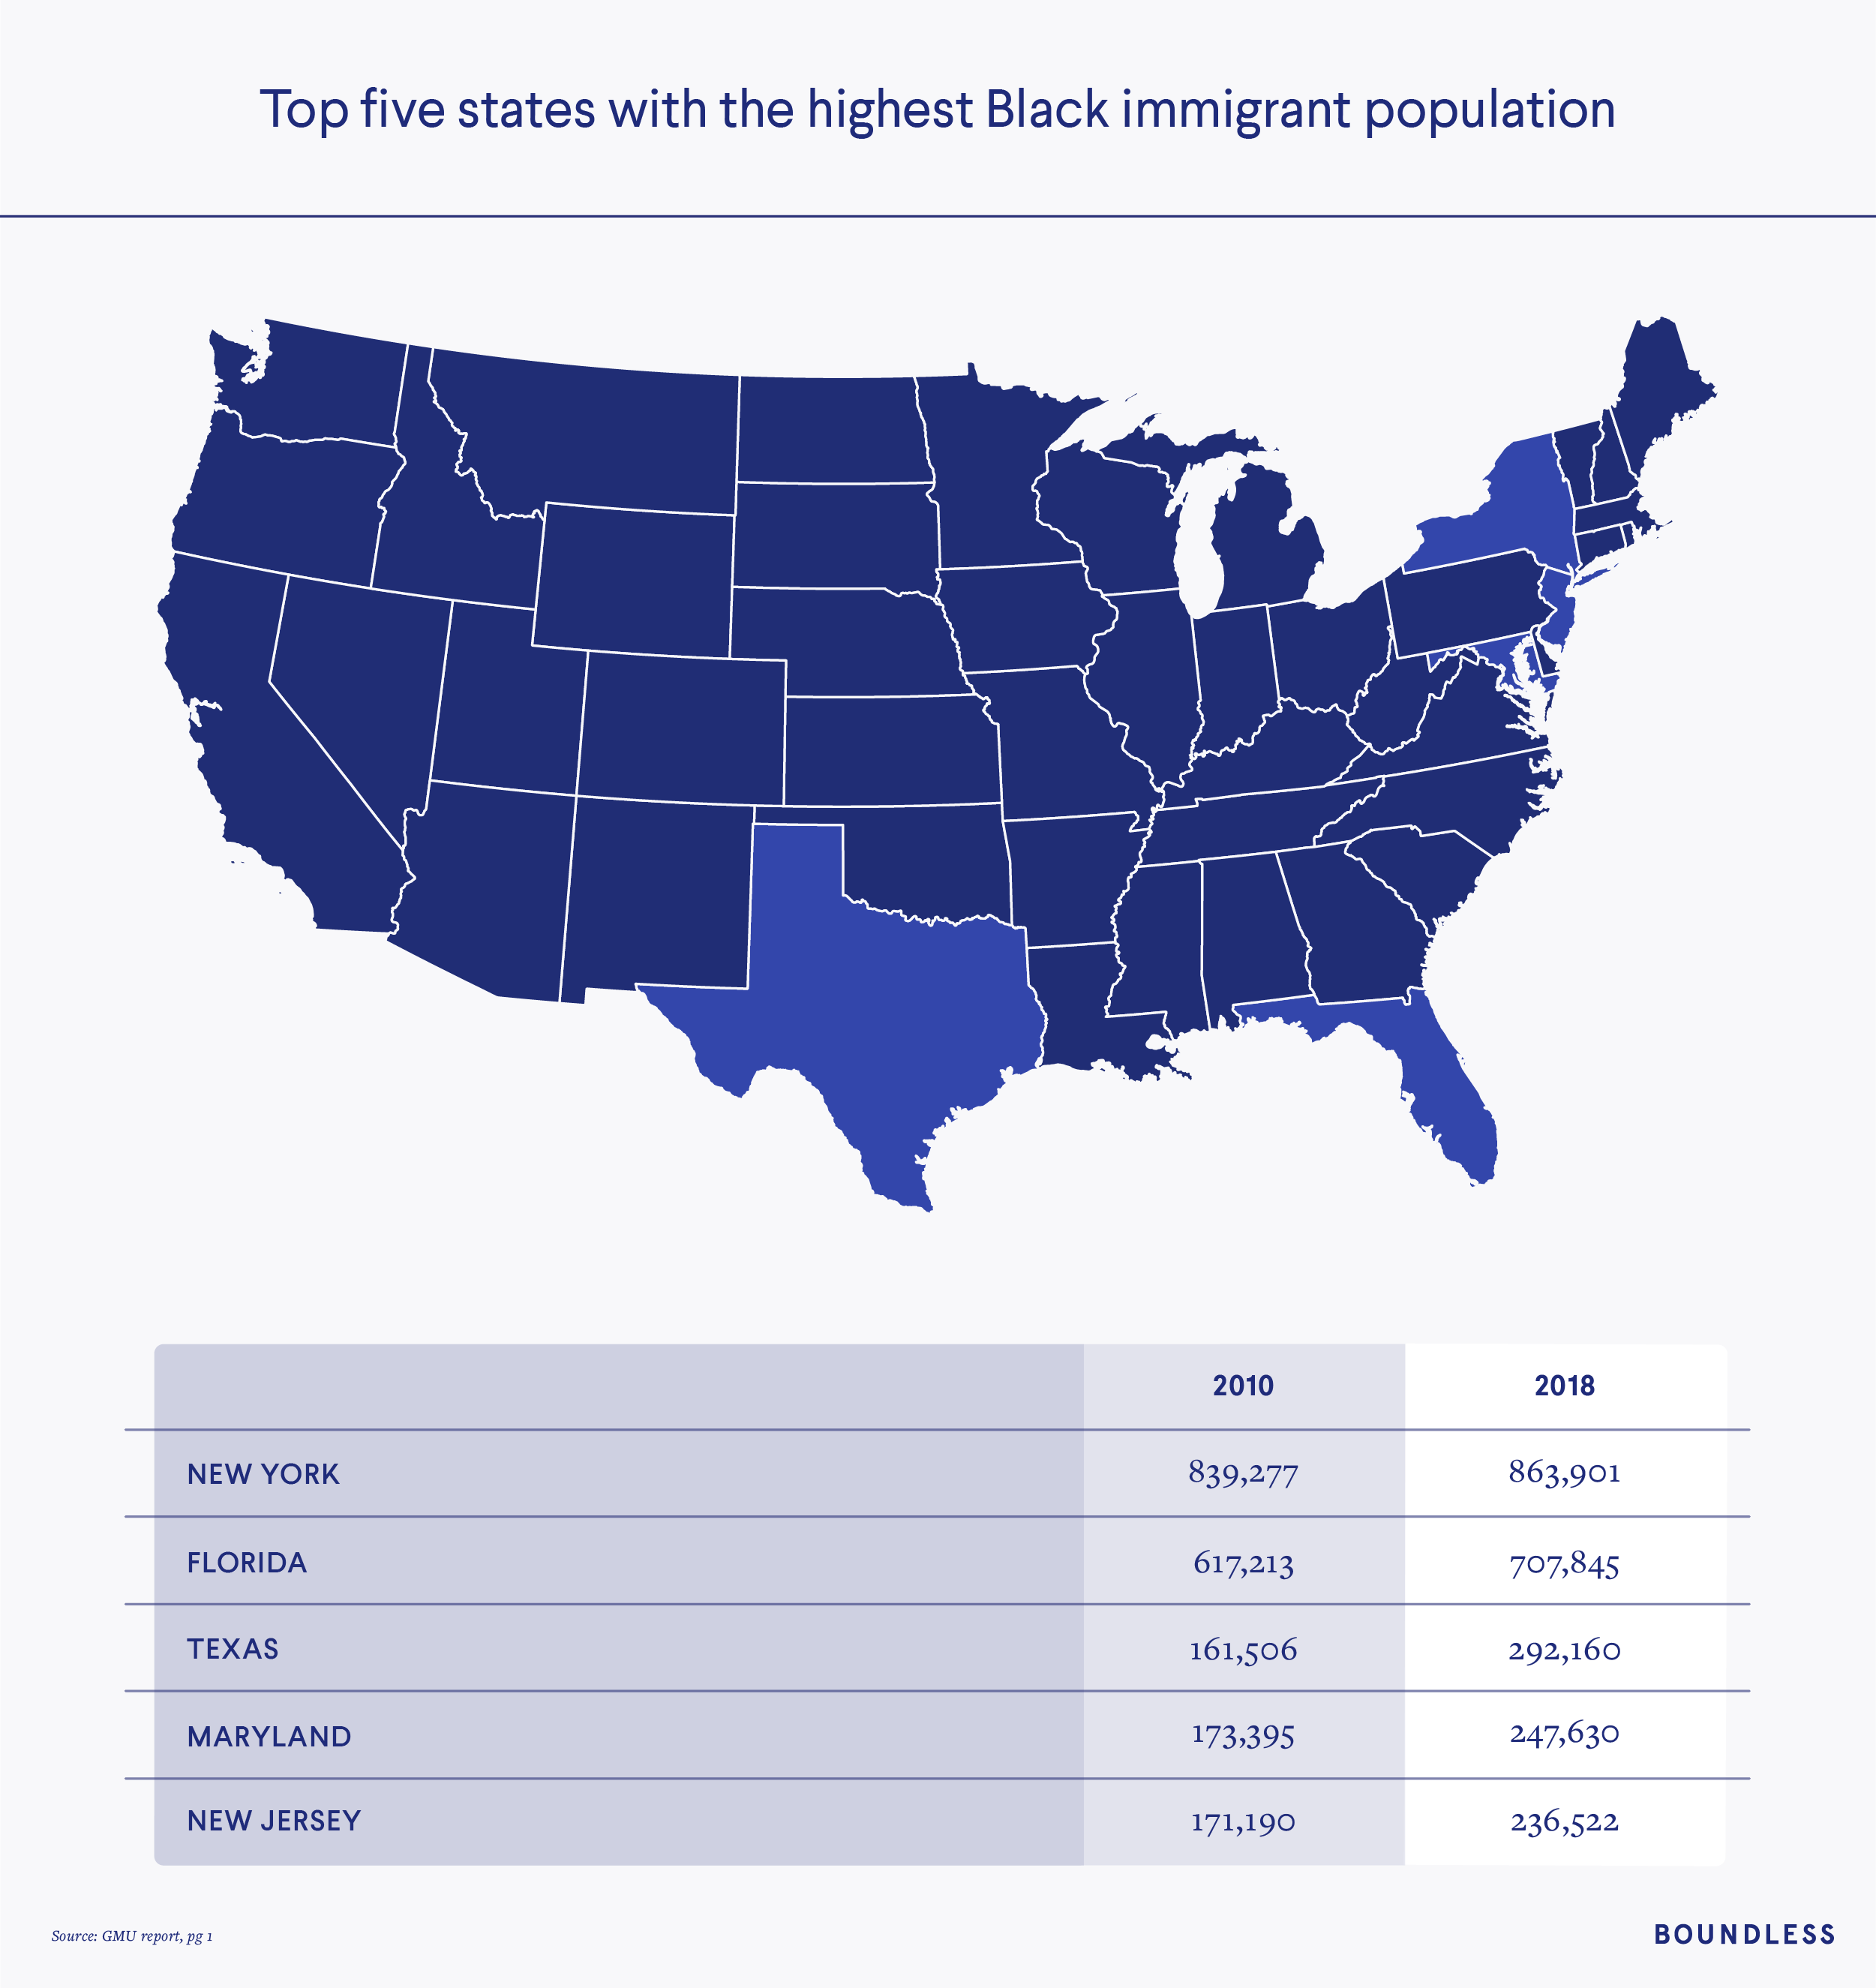 Top states with highest Black immigrant population